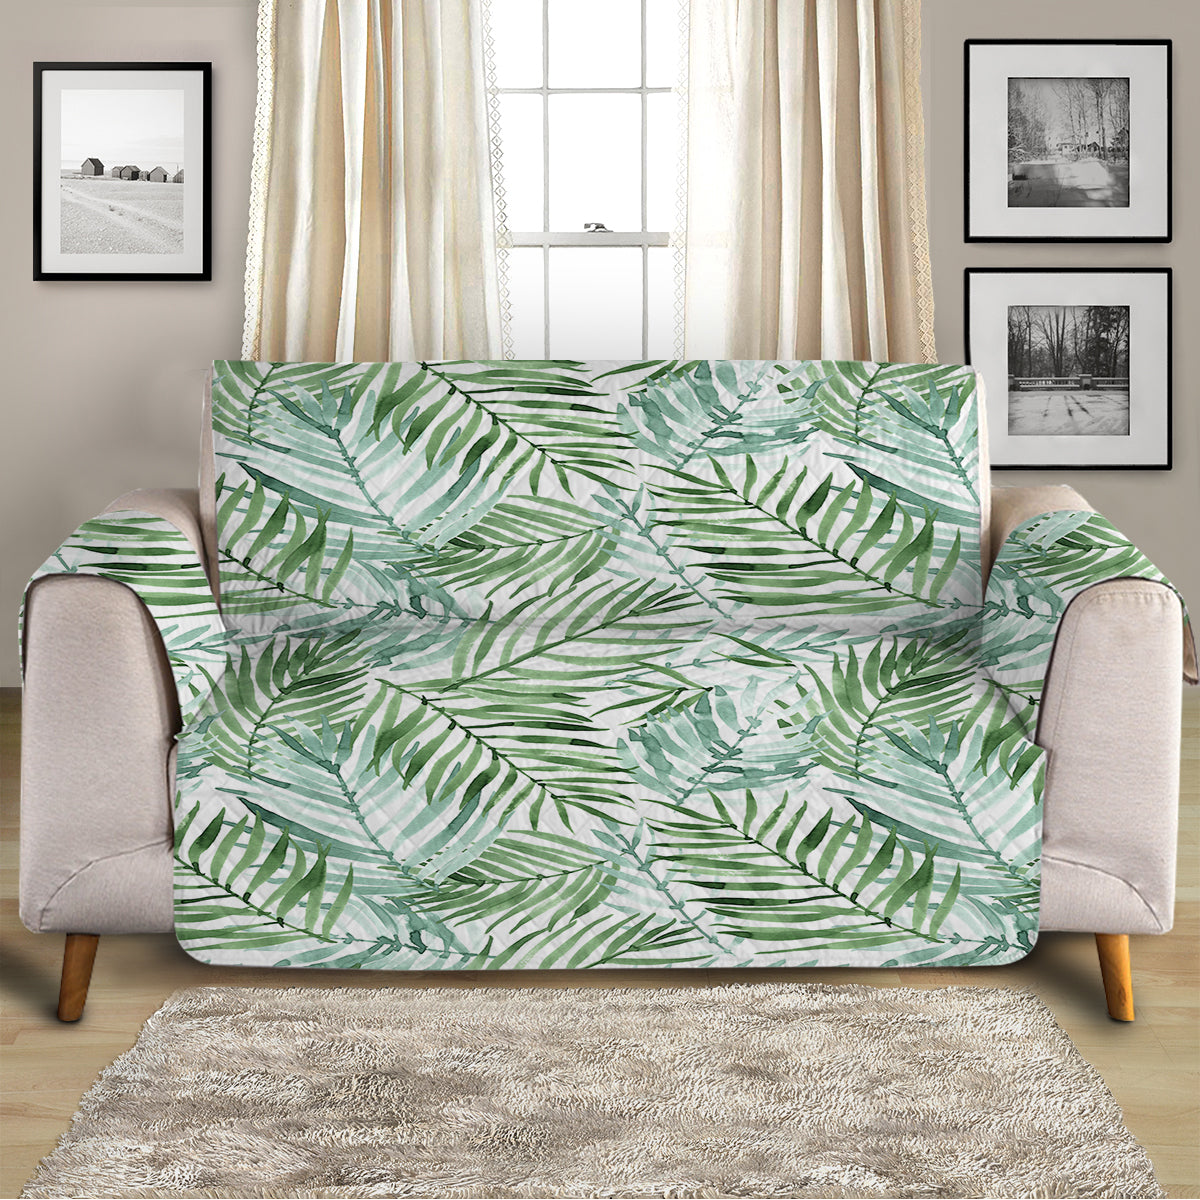 Tropical Palm Leaves Sofa Cover